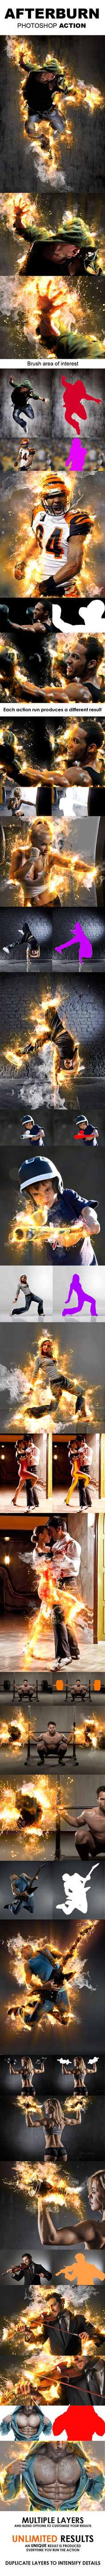 AfterBurn Photoshop Action - create spectacular fire effects